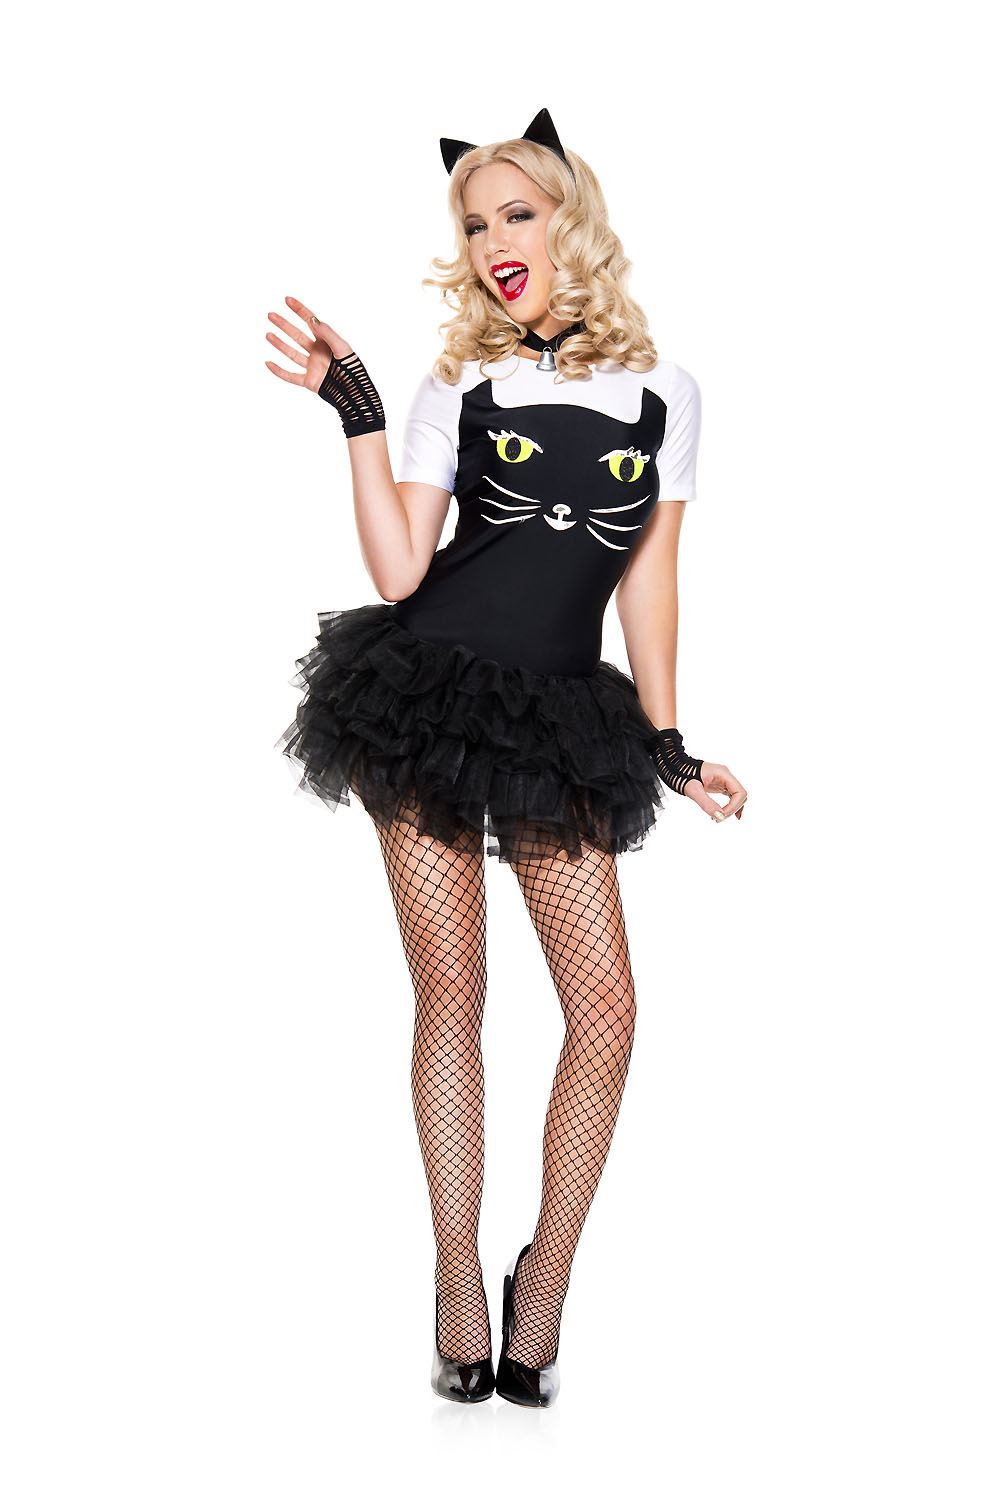 Adult Sassy Kitty Cat Woman Costume ...  sc 1 st  The Costume Land & Adult Sassy Kitty Cat Woman Costume   $31.99   The Costume Land